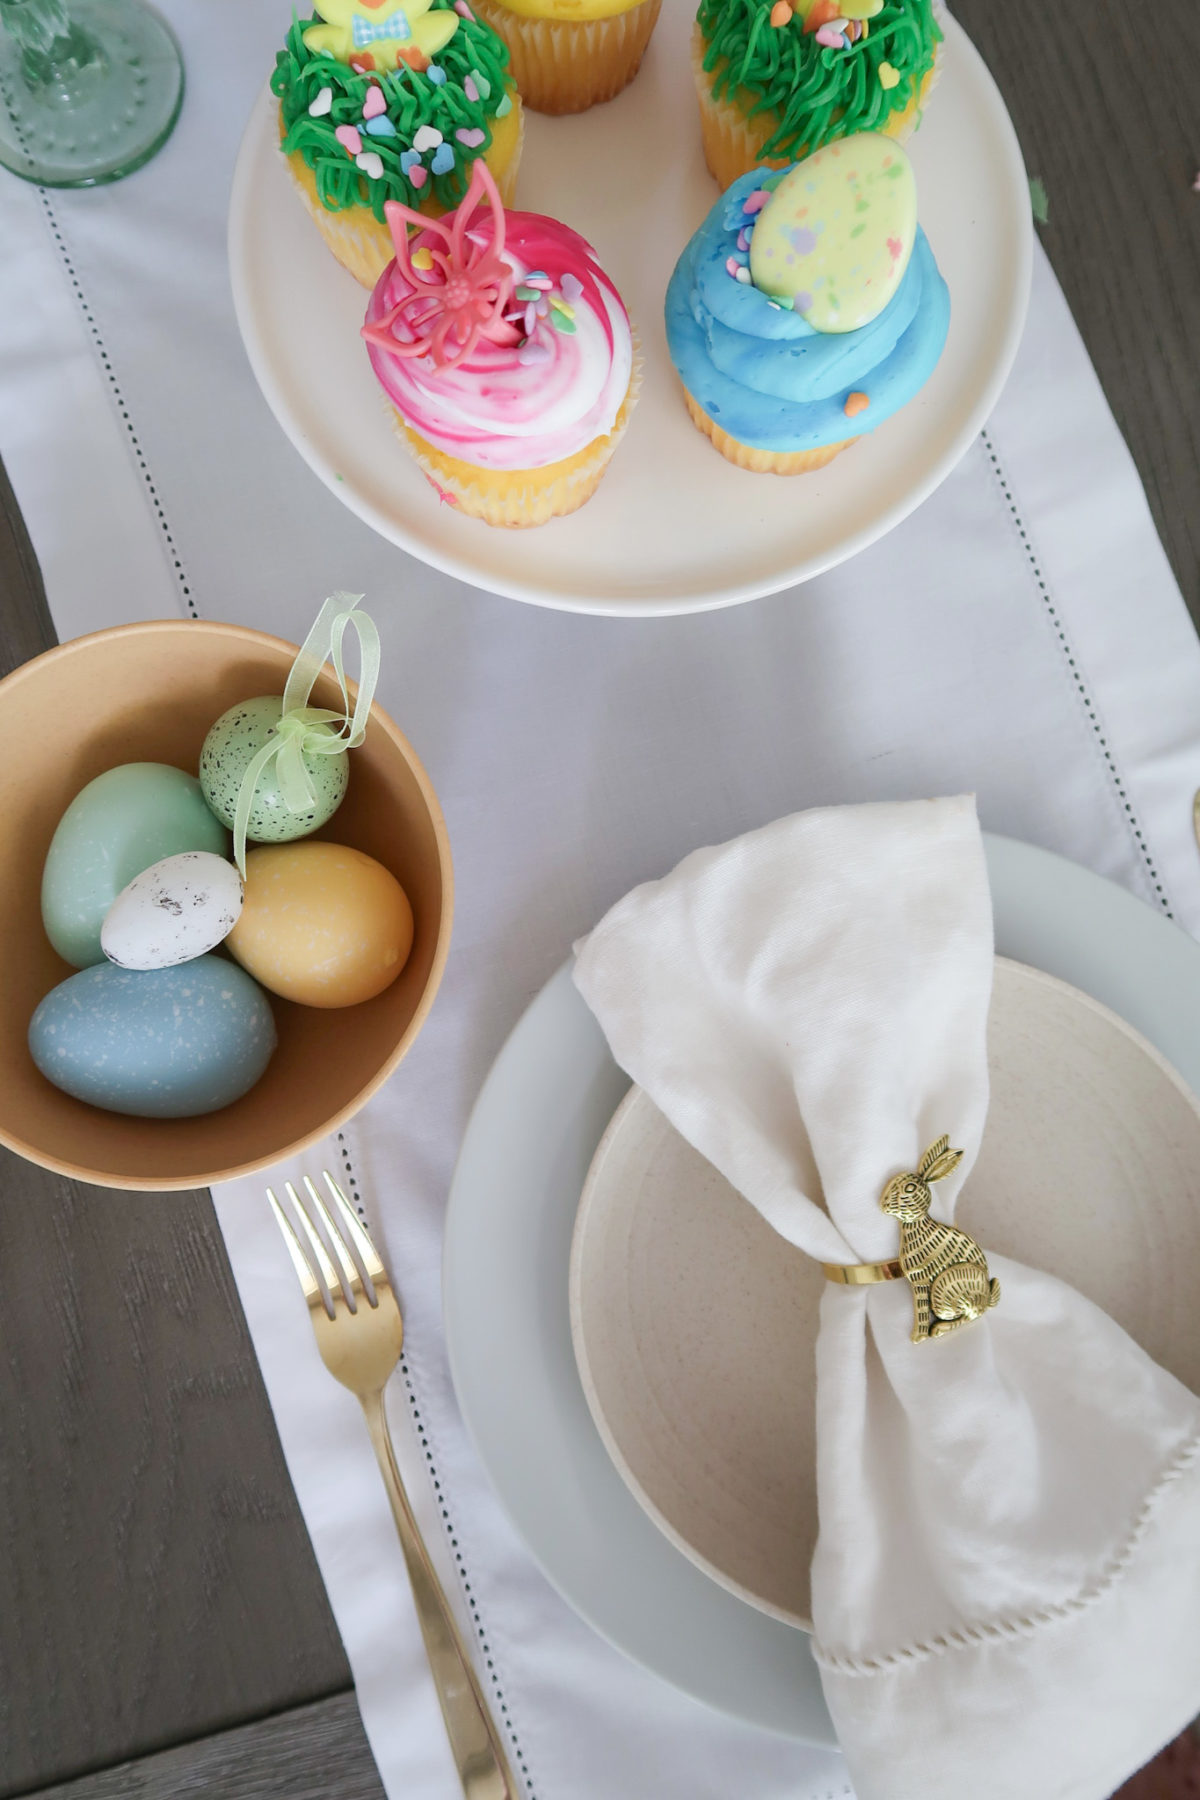 Spring Decor, White Linens, Cupcakes, Gold Flatware, Bunny Napkin Ring